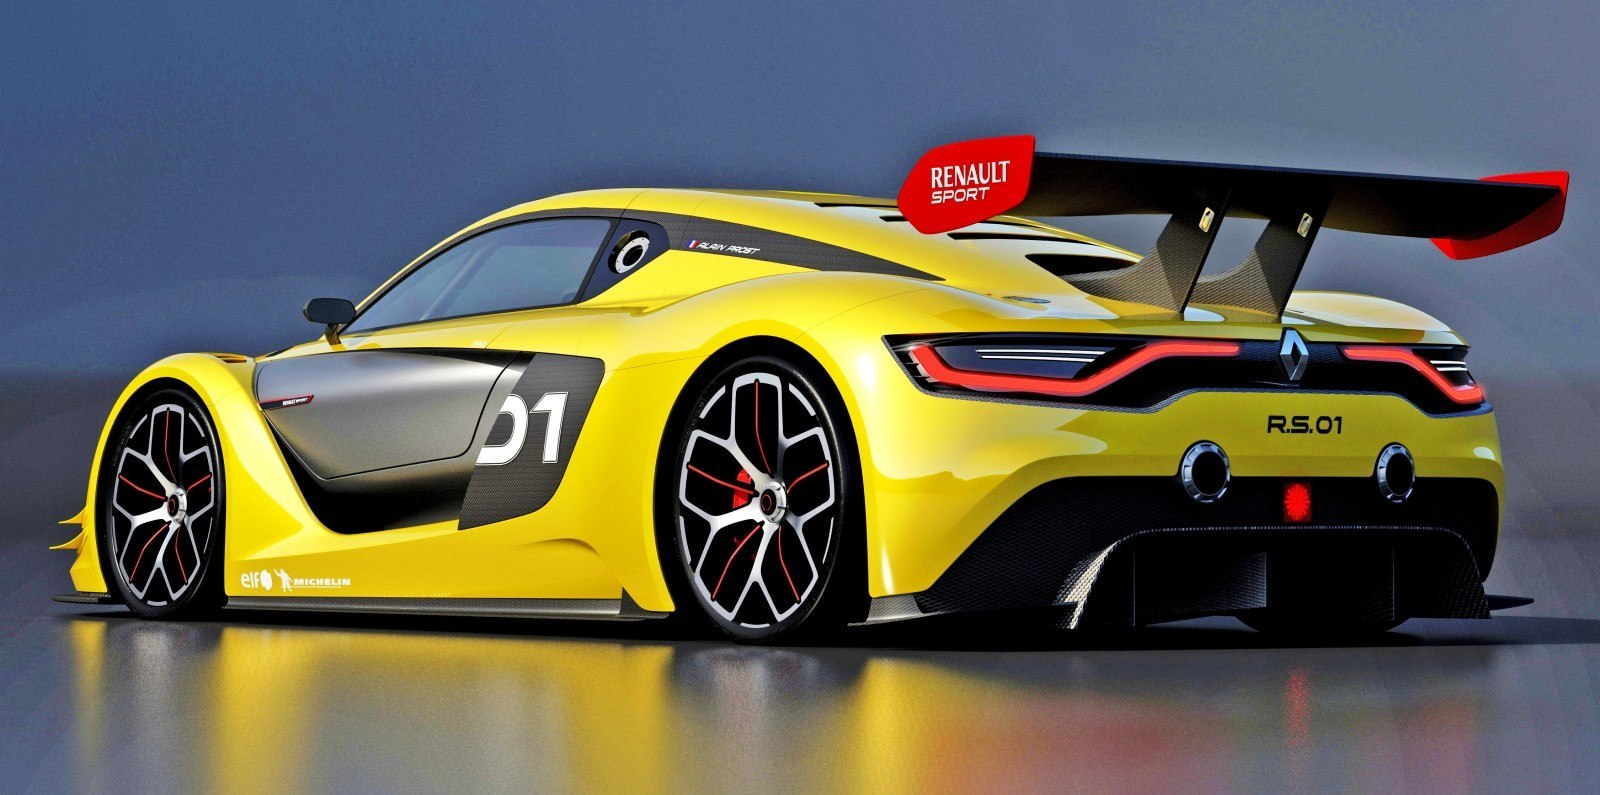 2018 renault sport rs 01 car photos catalog 2018. Black Bedroom Furniture Sets. Home Design Ideas